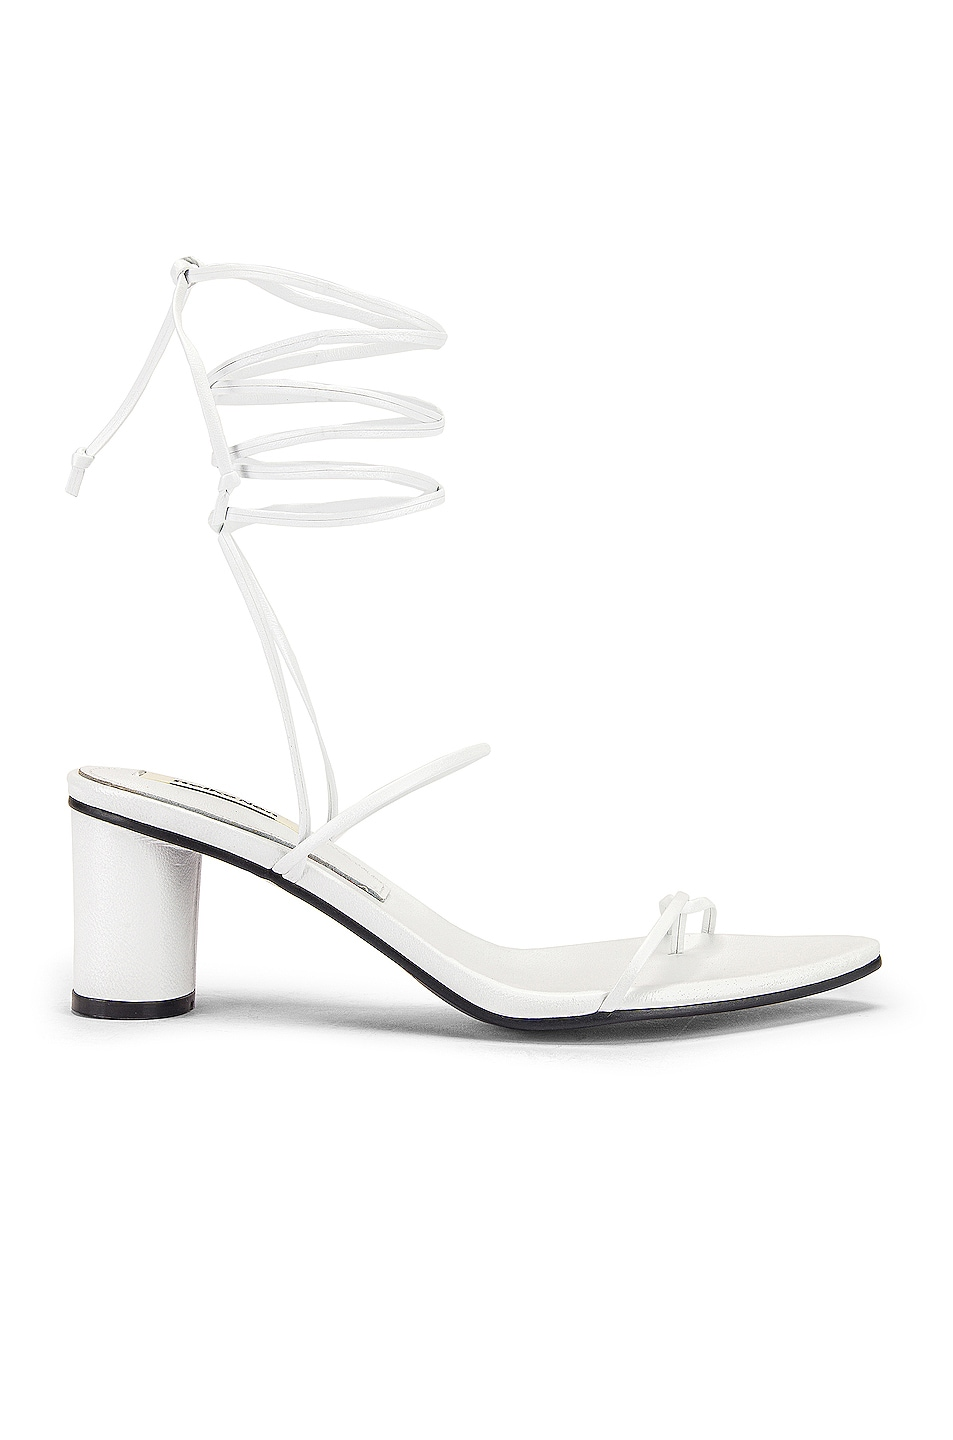 Image 2 of Reike Nen Odd Pair Heels in White